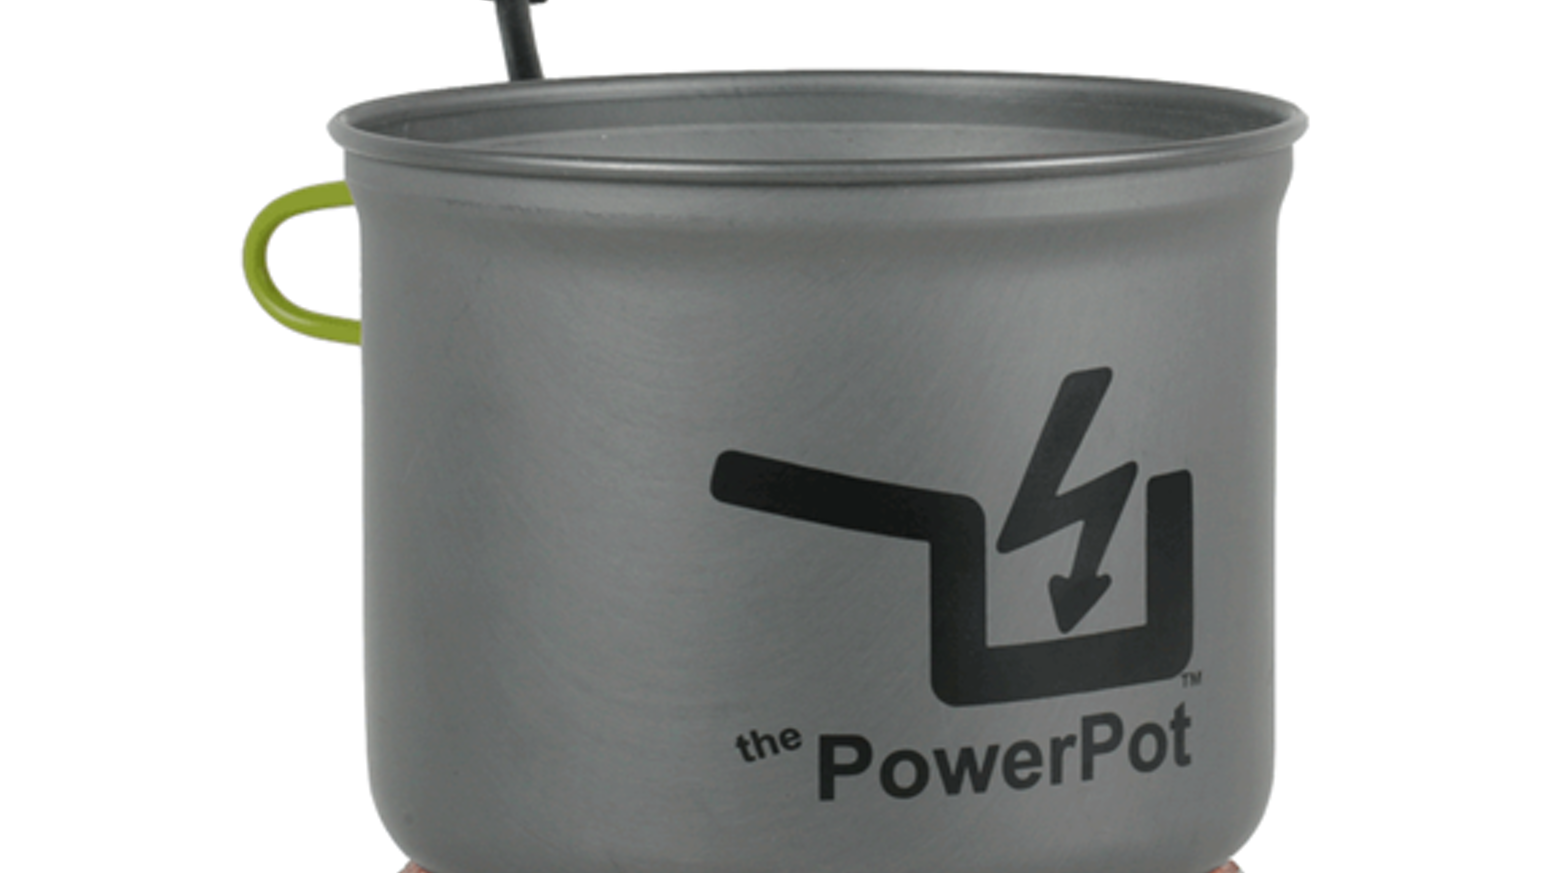 The PowerPot 5 is a thermoelectric generator that turns heat from cooking directly into USB power for your mobile devices.